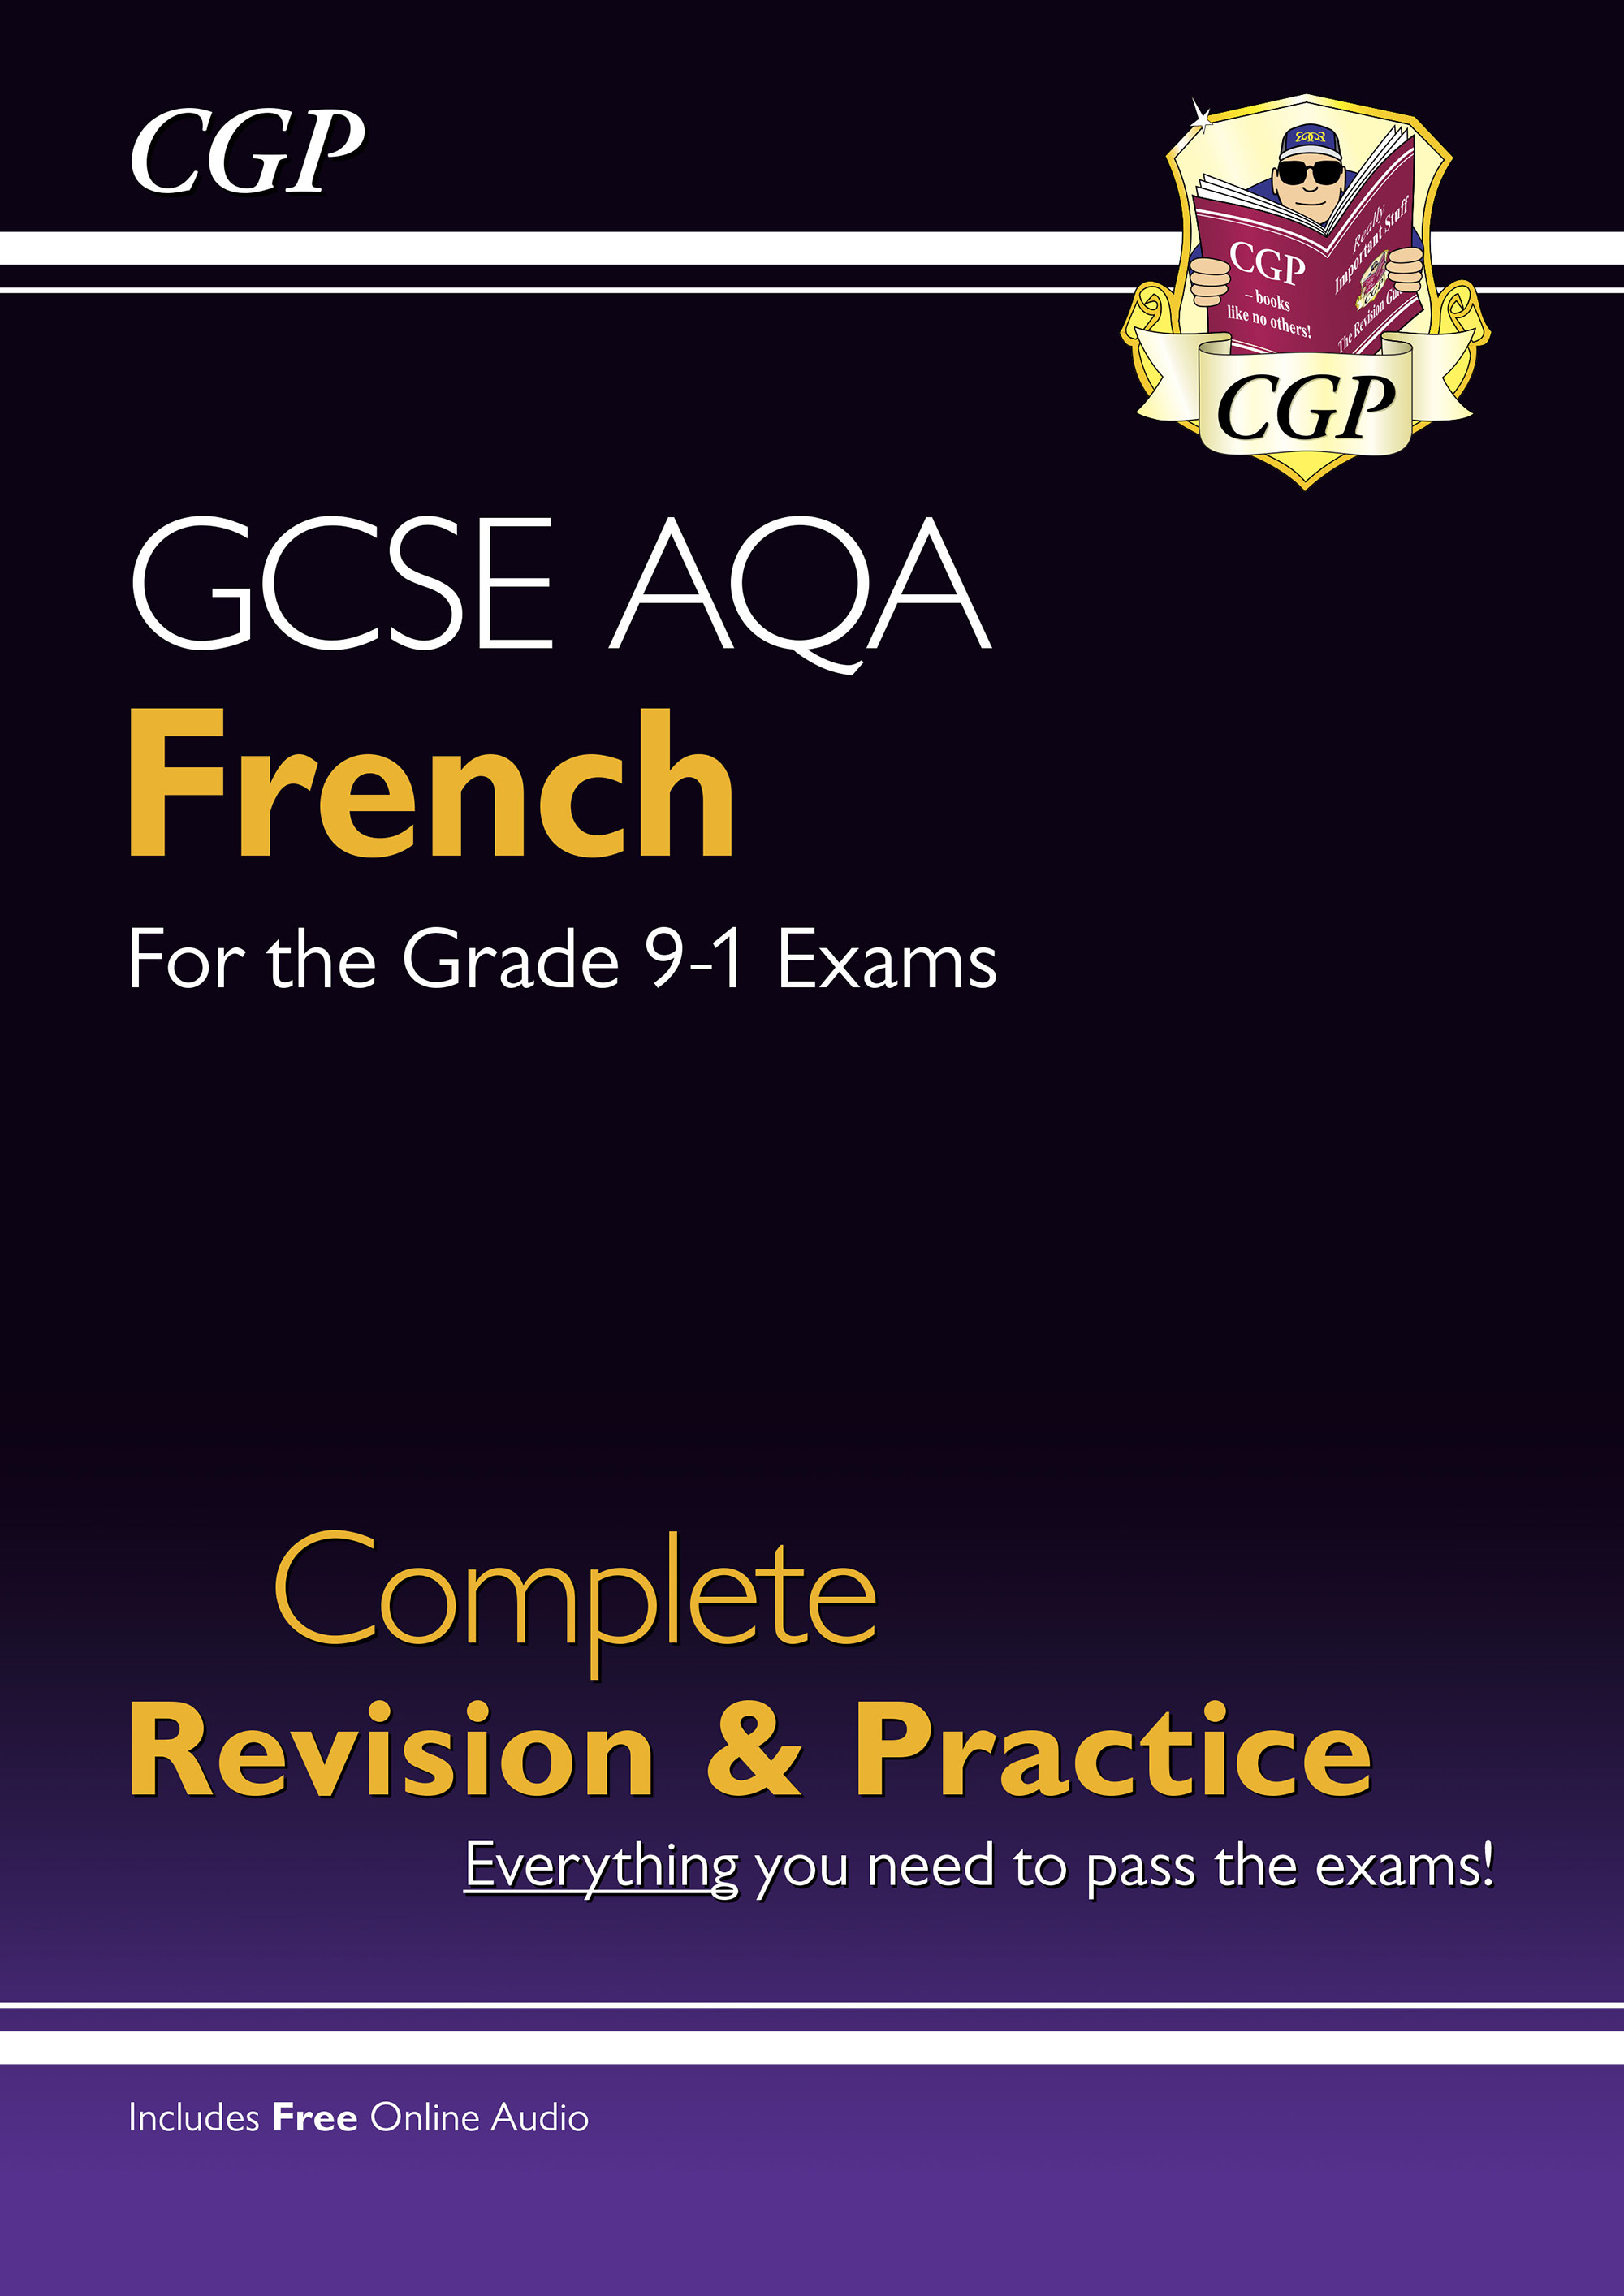 FAS41D - GCSE French AQA Complete Revision & Practice Online Edition - Grade 9-1 Course